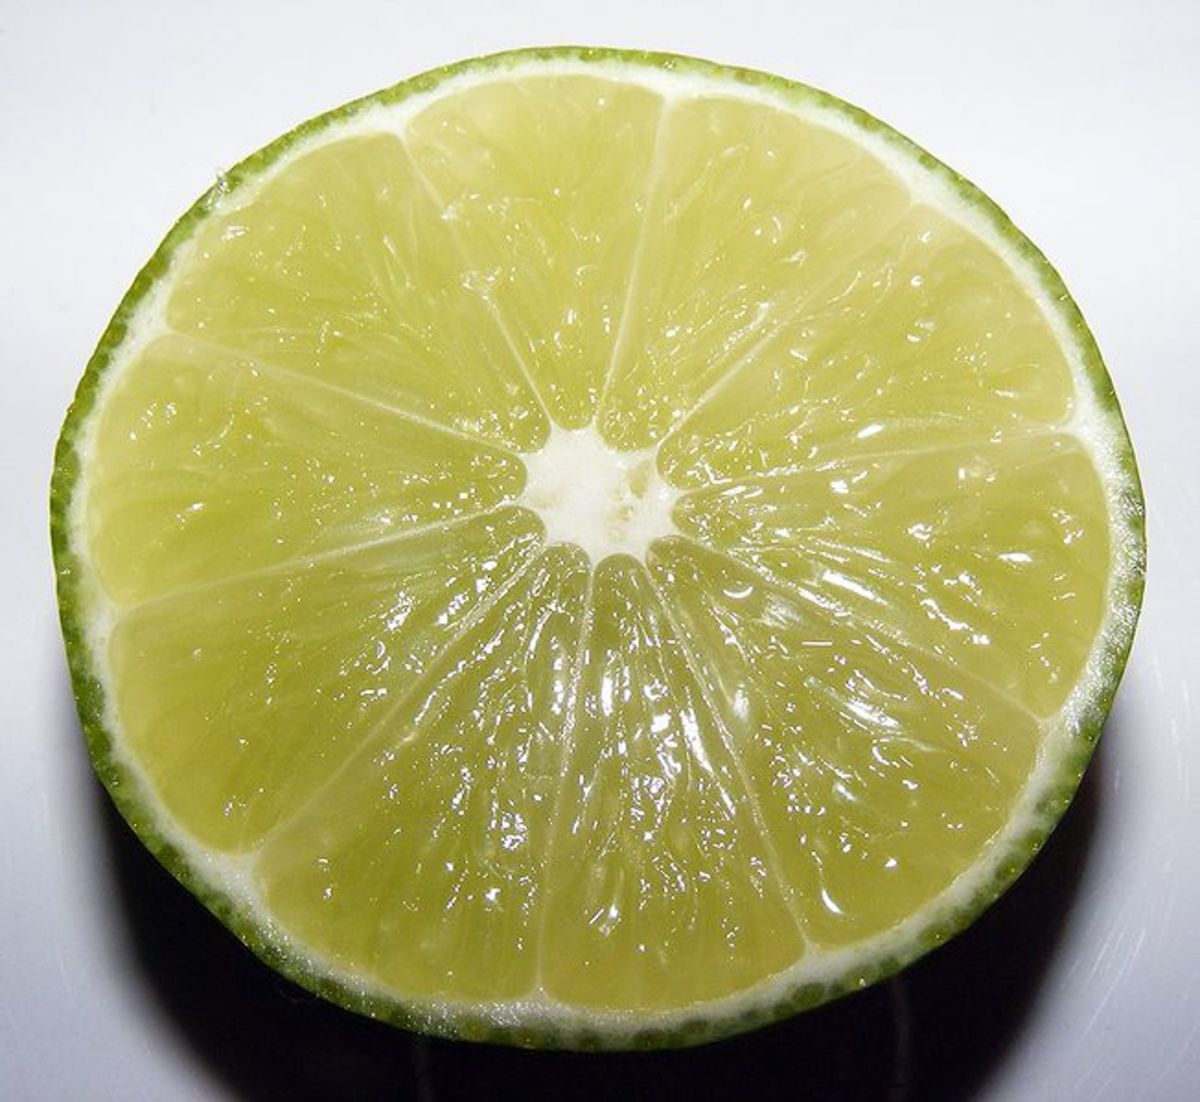 This lime purchased in California was photographed by J.smith on October 29, 2008.